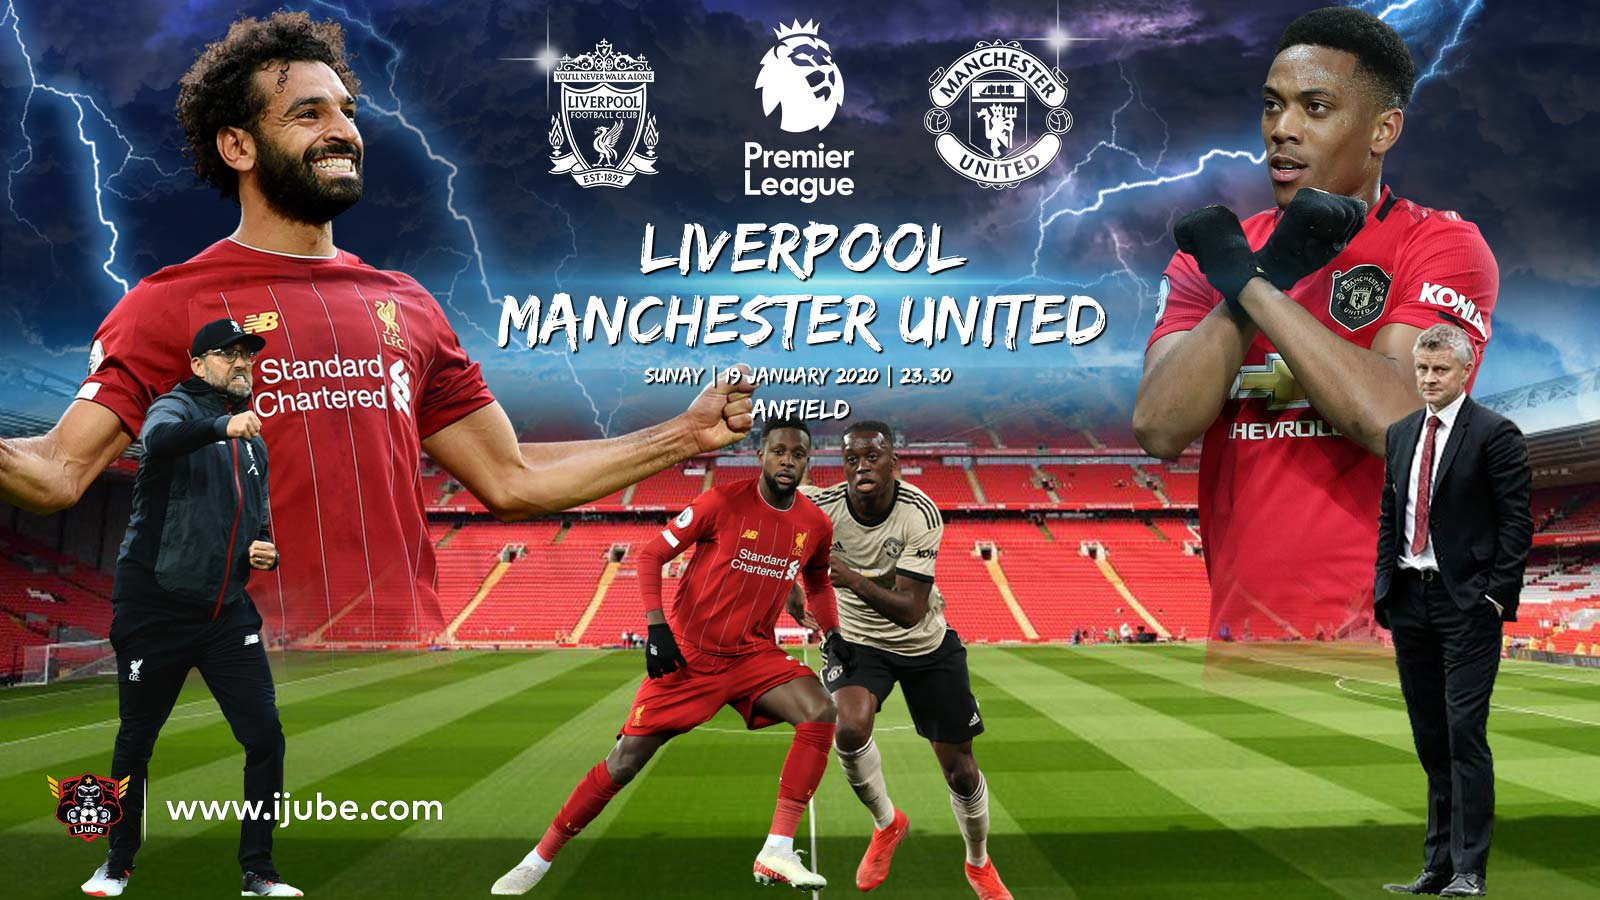 Big-Match-Premier-League-2019-2020-Liverpool-vs-Man-United-iJube | iJube.com